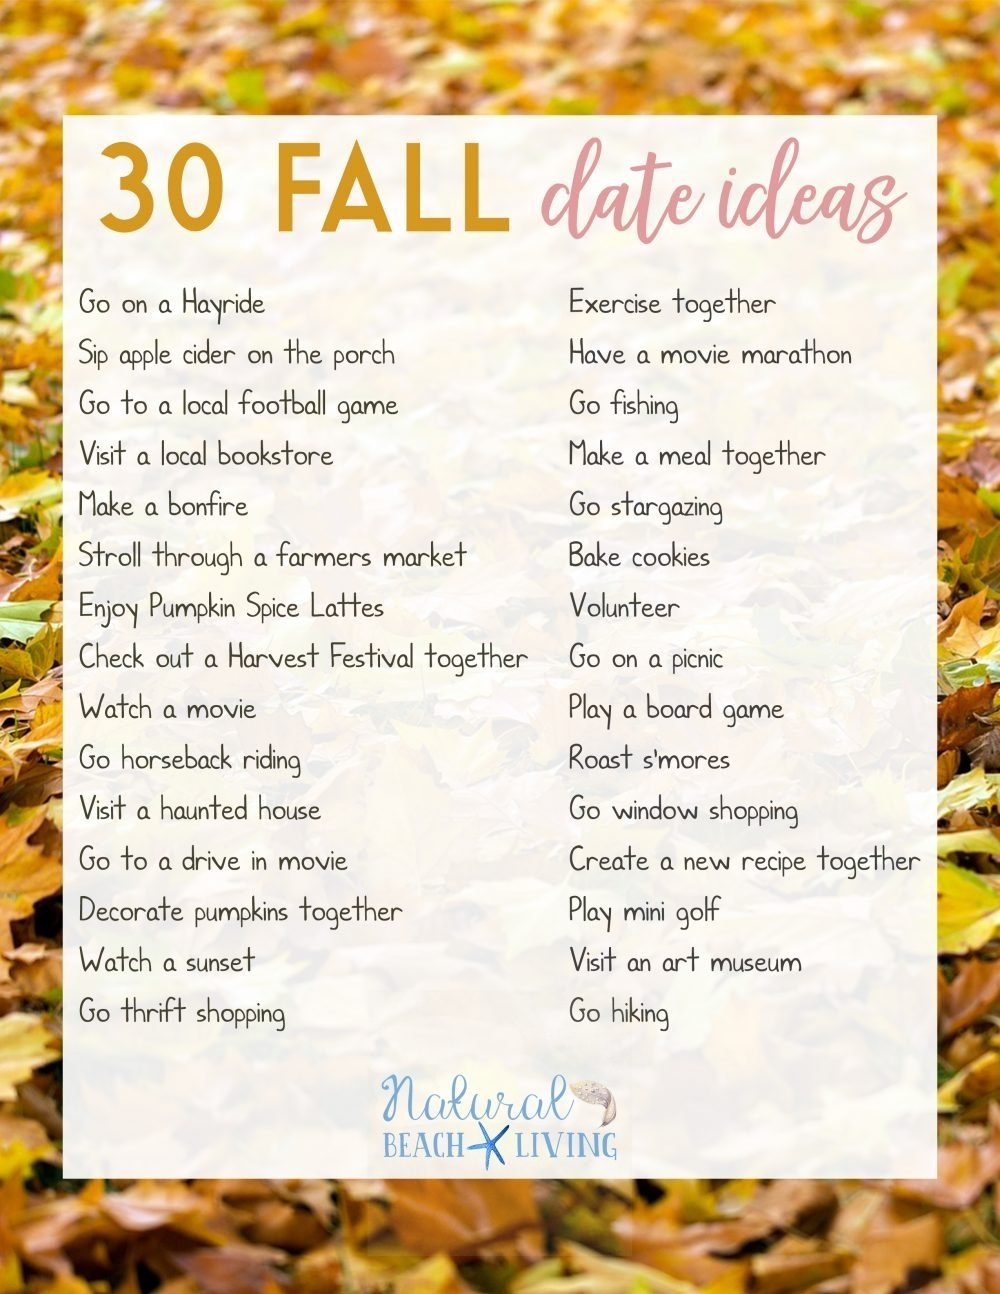 10 Spectacular Dating Ideas For Married Couples fun date night ideas for fall natural beach living 10 2020